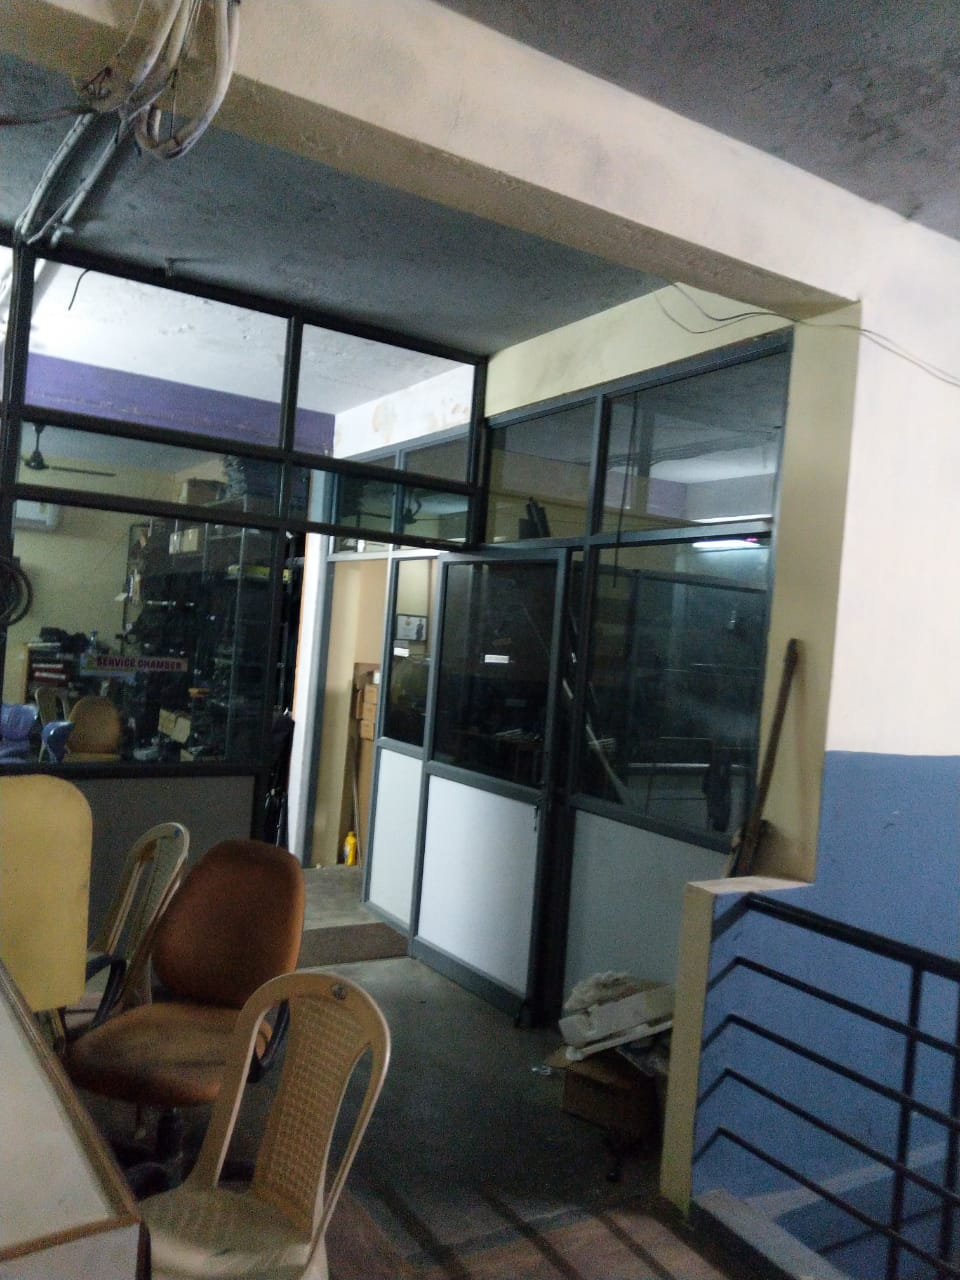 Reputed Cyber Cafe And It Training Facility For Sale In -8815